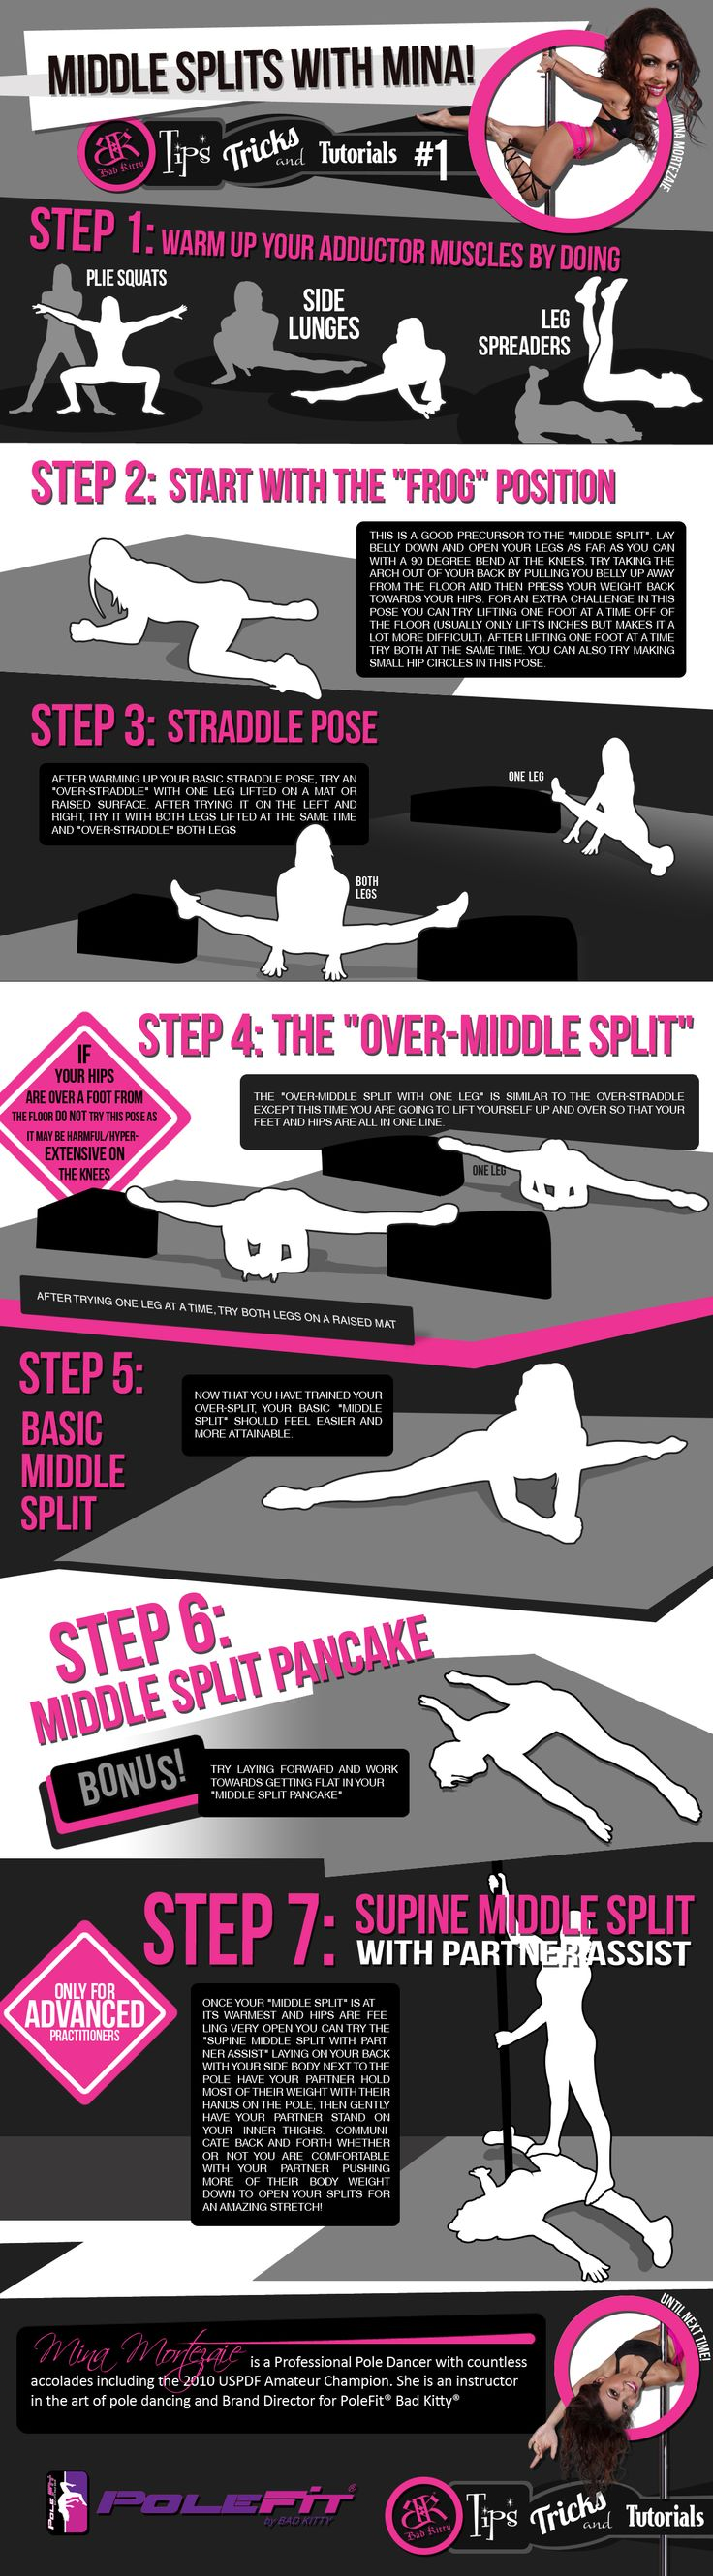 PoleFit Tips and Tricks Series 1 Middle Splits with Mina - Bad Kitty Blog | Pole Dancing